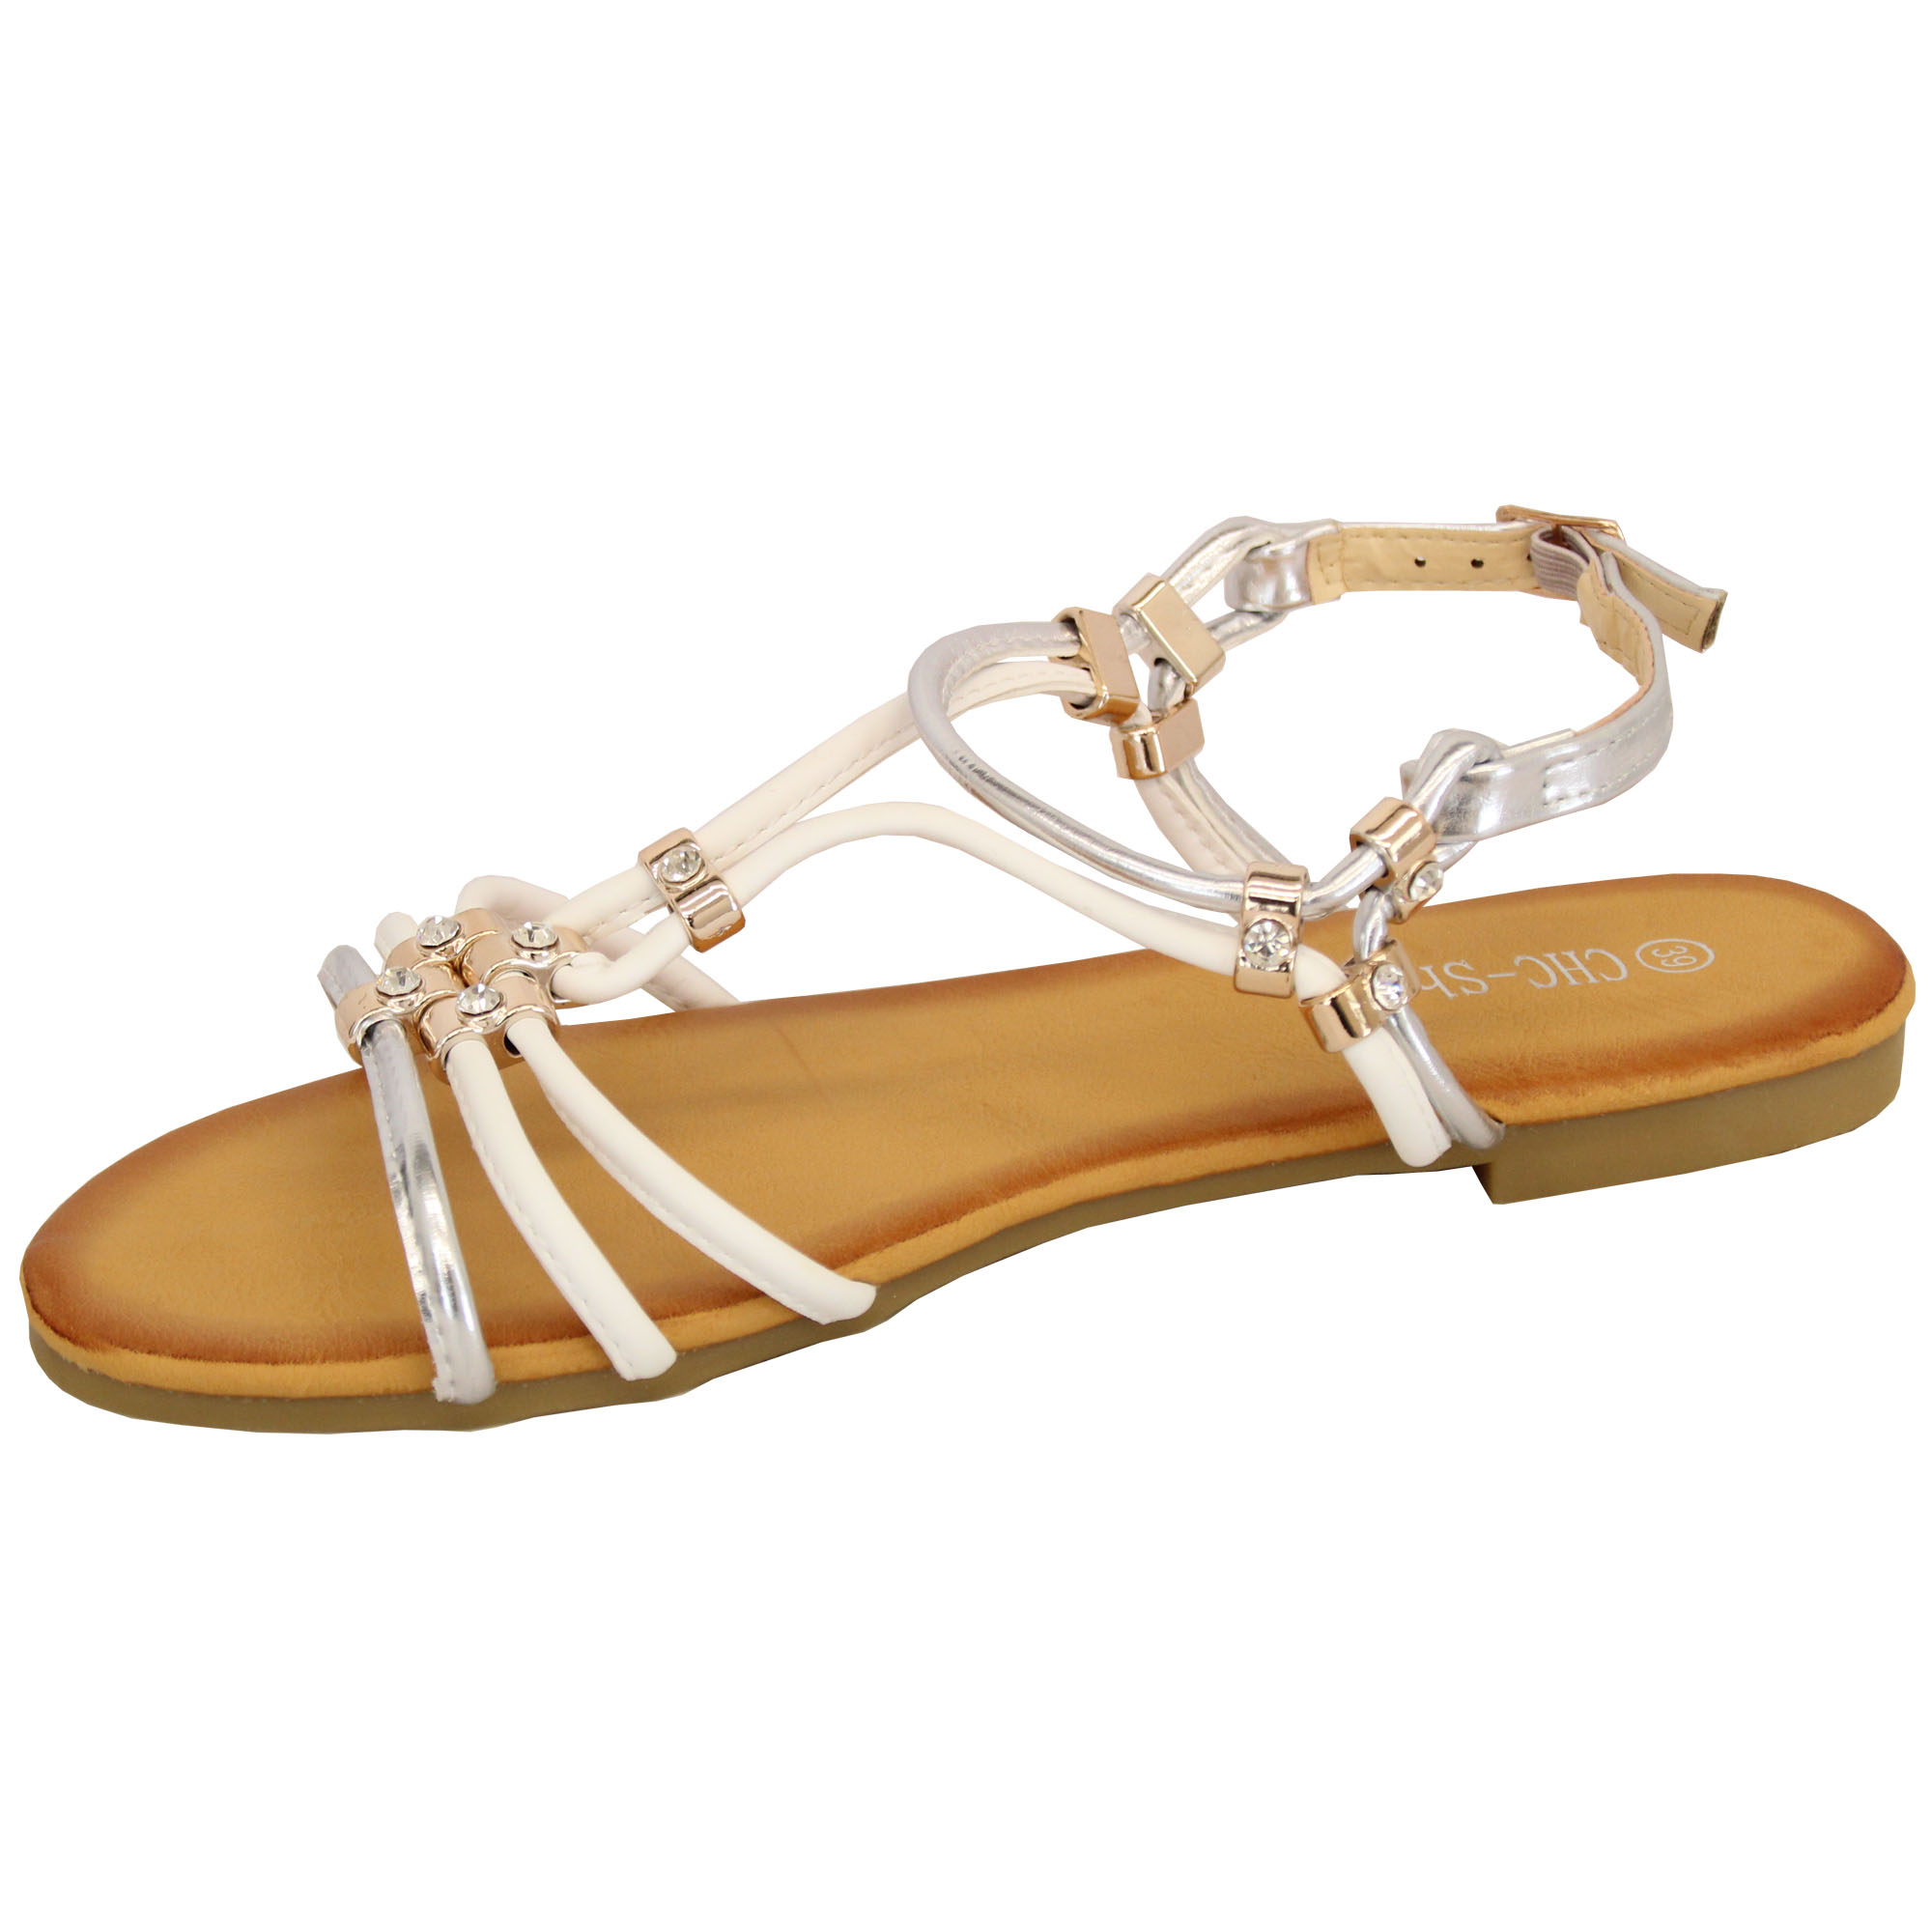 Ladies-Flat-Sandals-Womens-Slip-On-Open-Toe-Buckle-Diamante-Shoes-Fashion-Party thumbnail 13